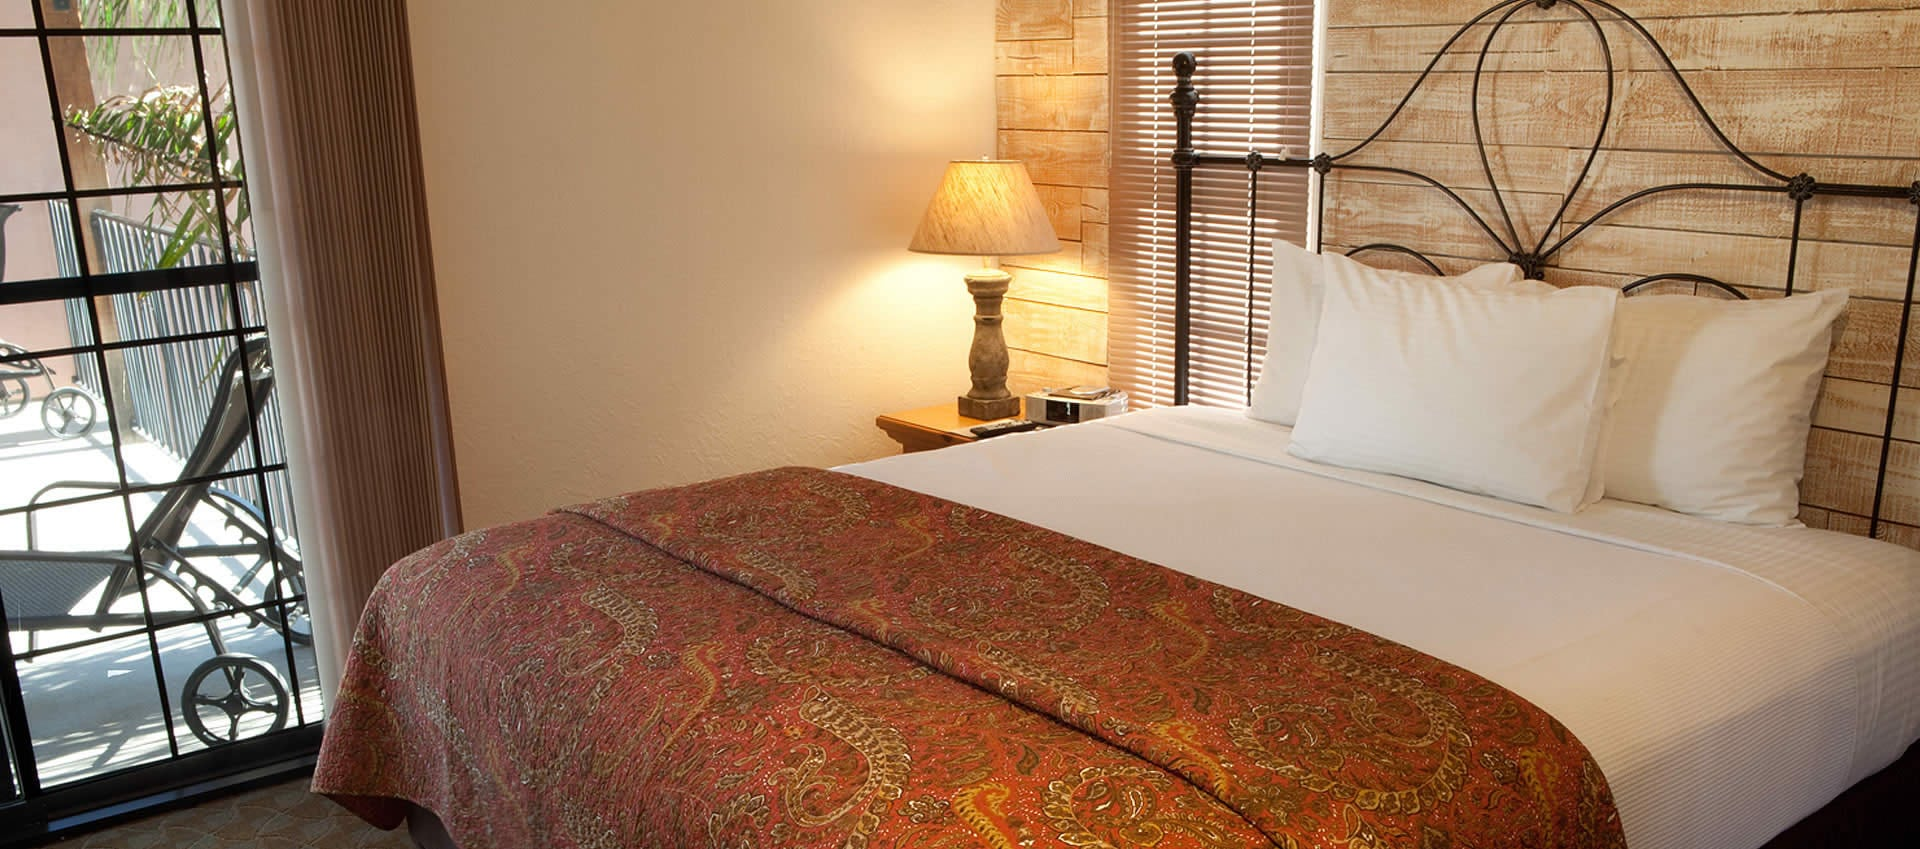 The Townhouse room Spacious King Bed